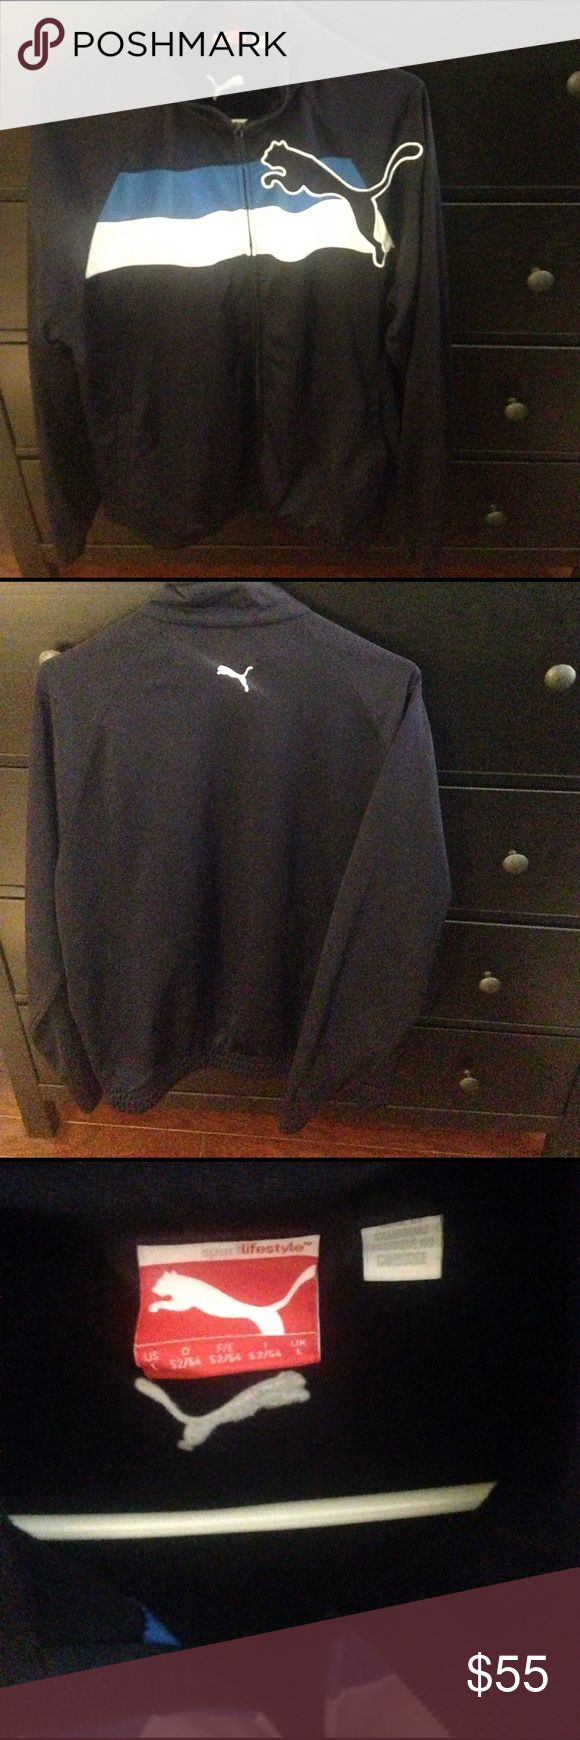 Puma zip up Navy blue zip up. Elastic around bottom hem. Two zip pockets. 100% polyester. Puma logo across chest with blue and white stripe. Please ask questions! Puma Jackets & Coats